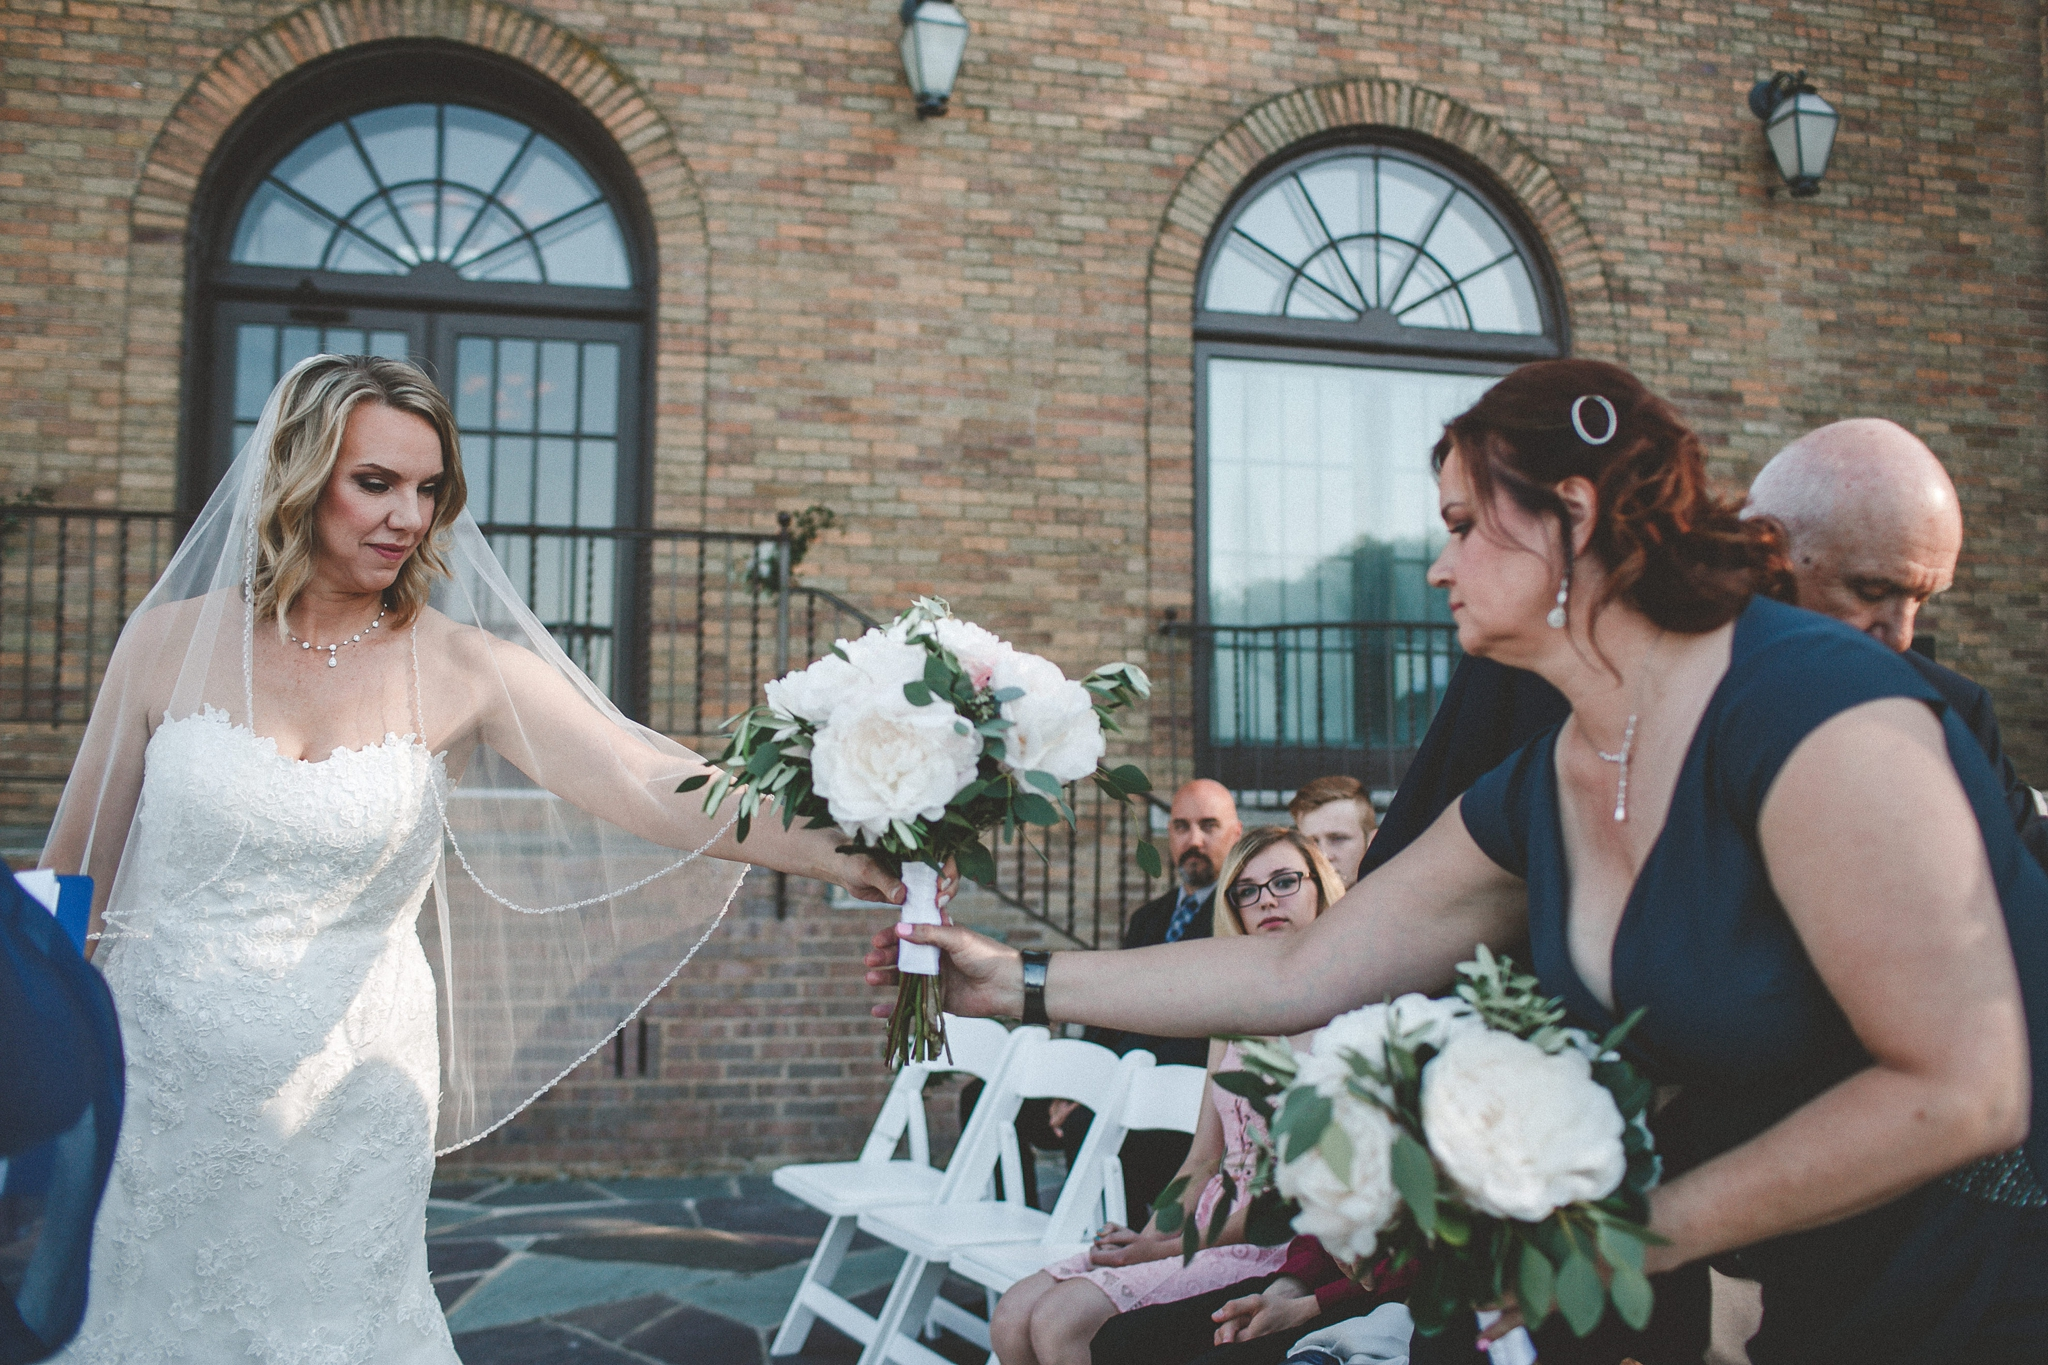 hotel_baker_st_charles_IL_wedding_photographer_0046.jpg